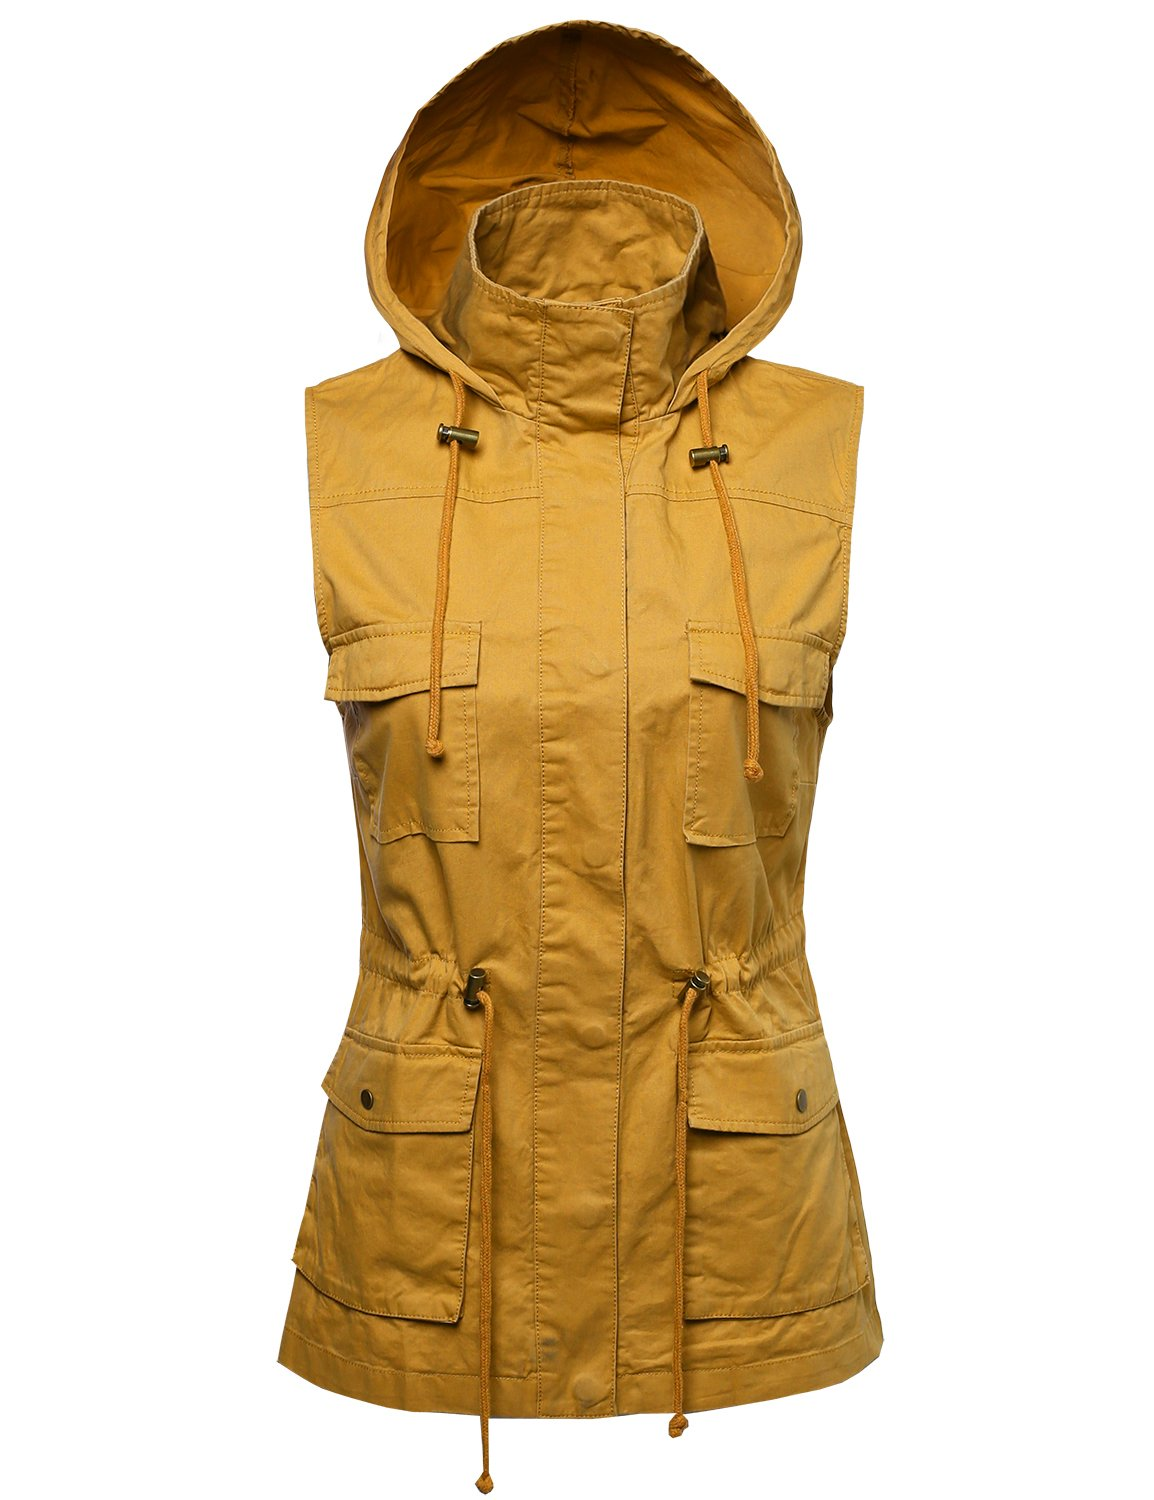 Made by Emma Women's Sleeveless Safari Military Hooded Vest Jacket